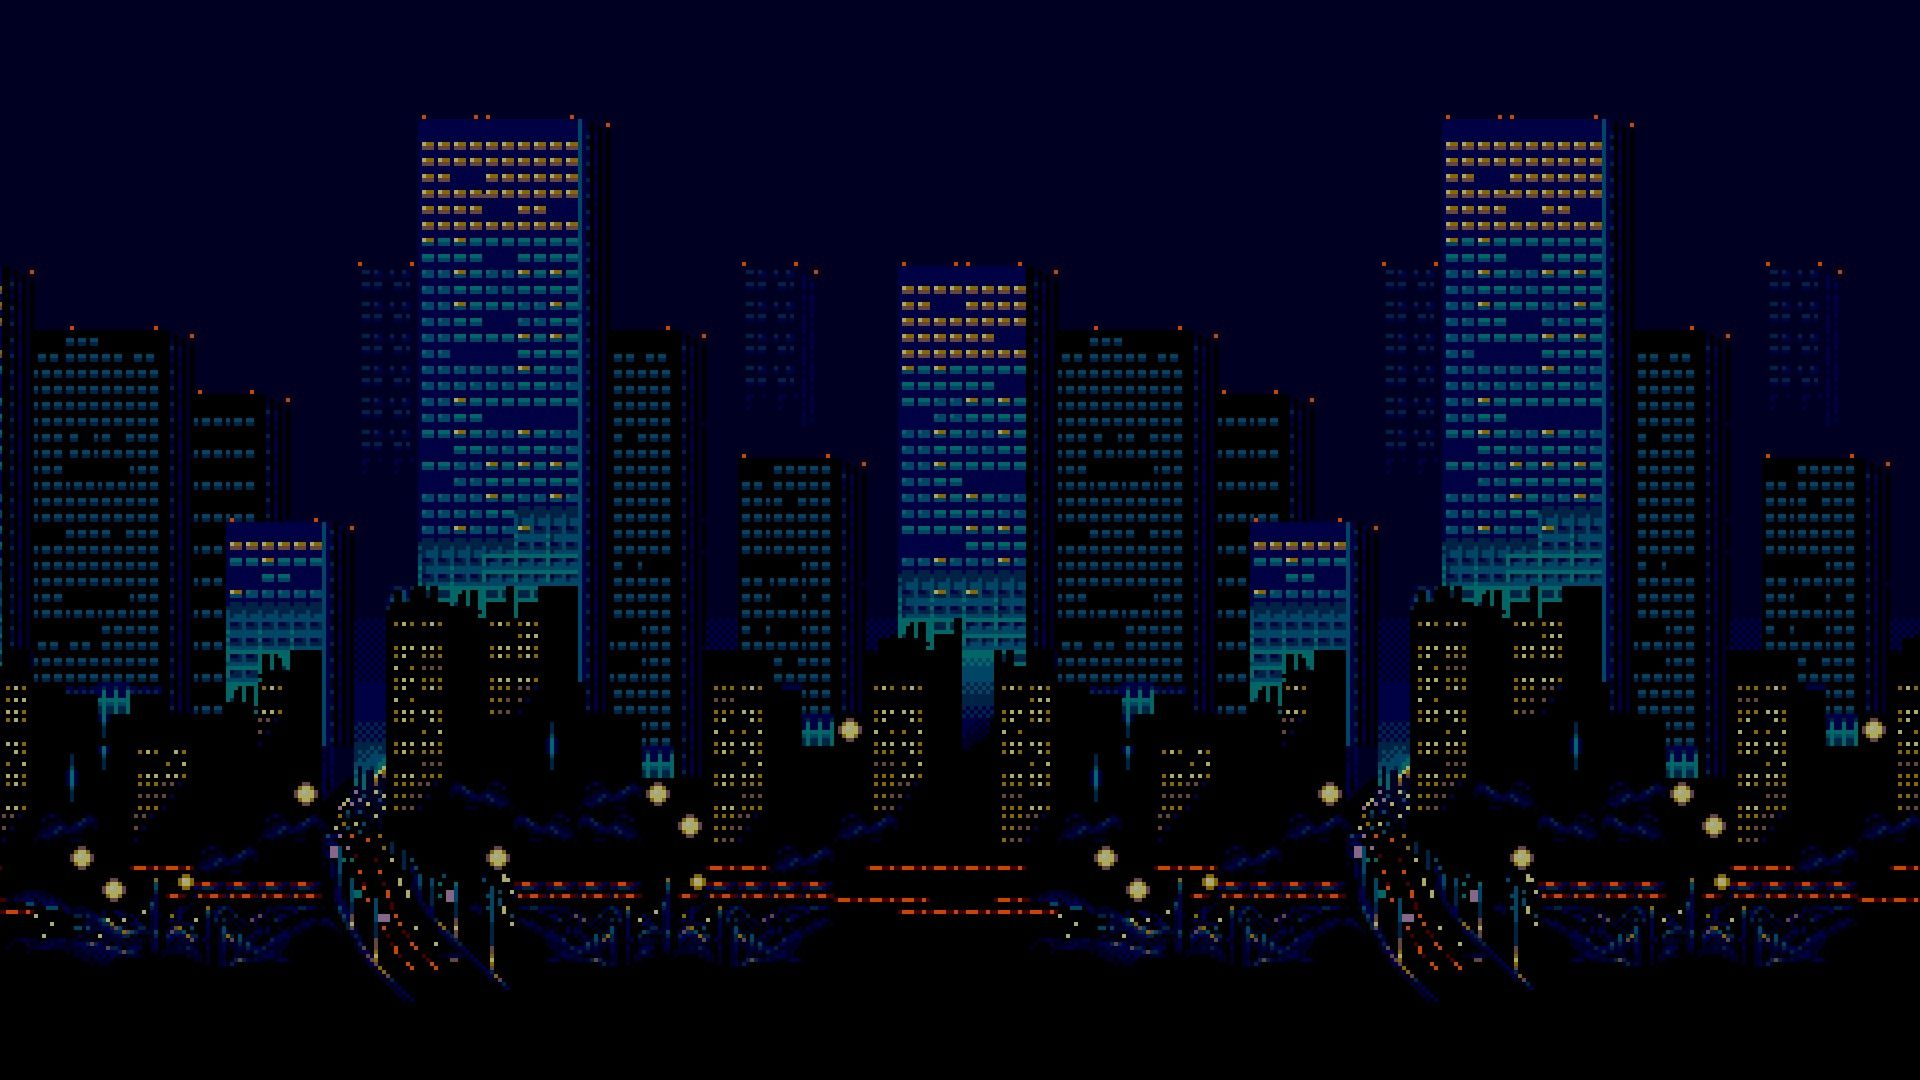 pixel art, 16 bit, Sega, Streets of Rage, City Wallpapers